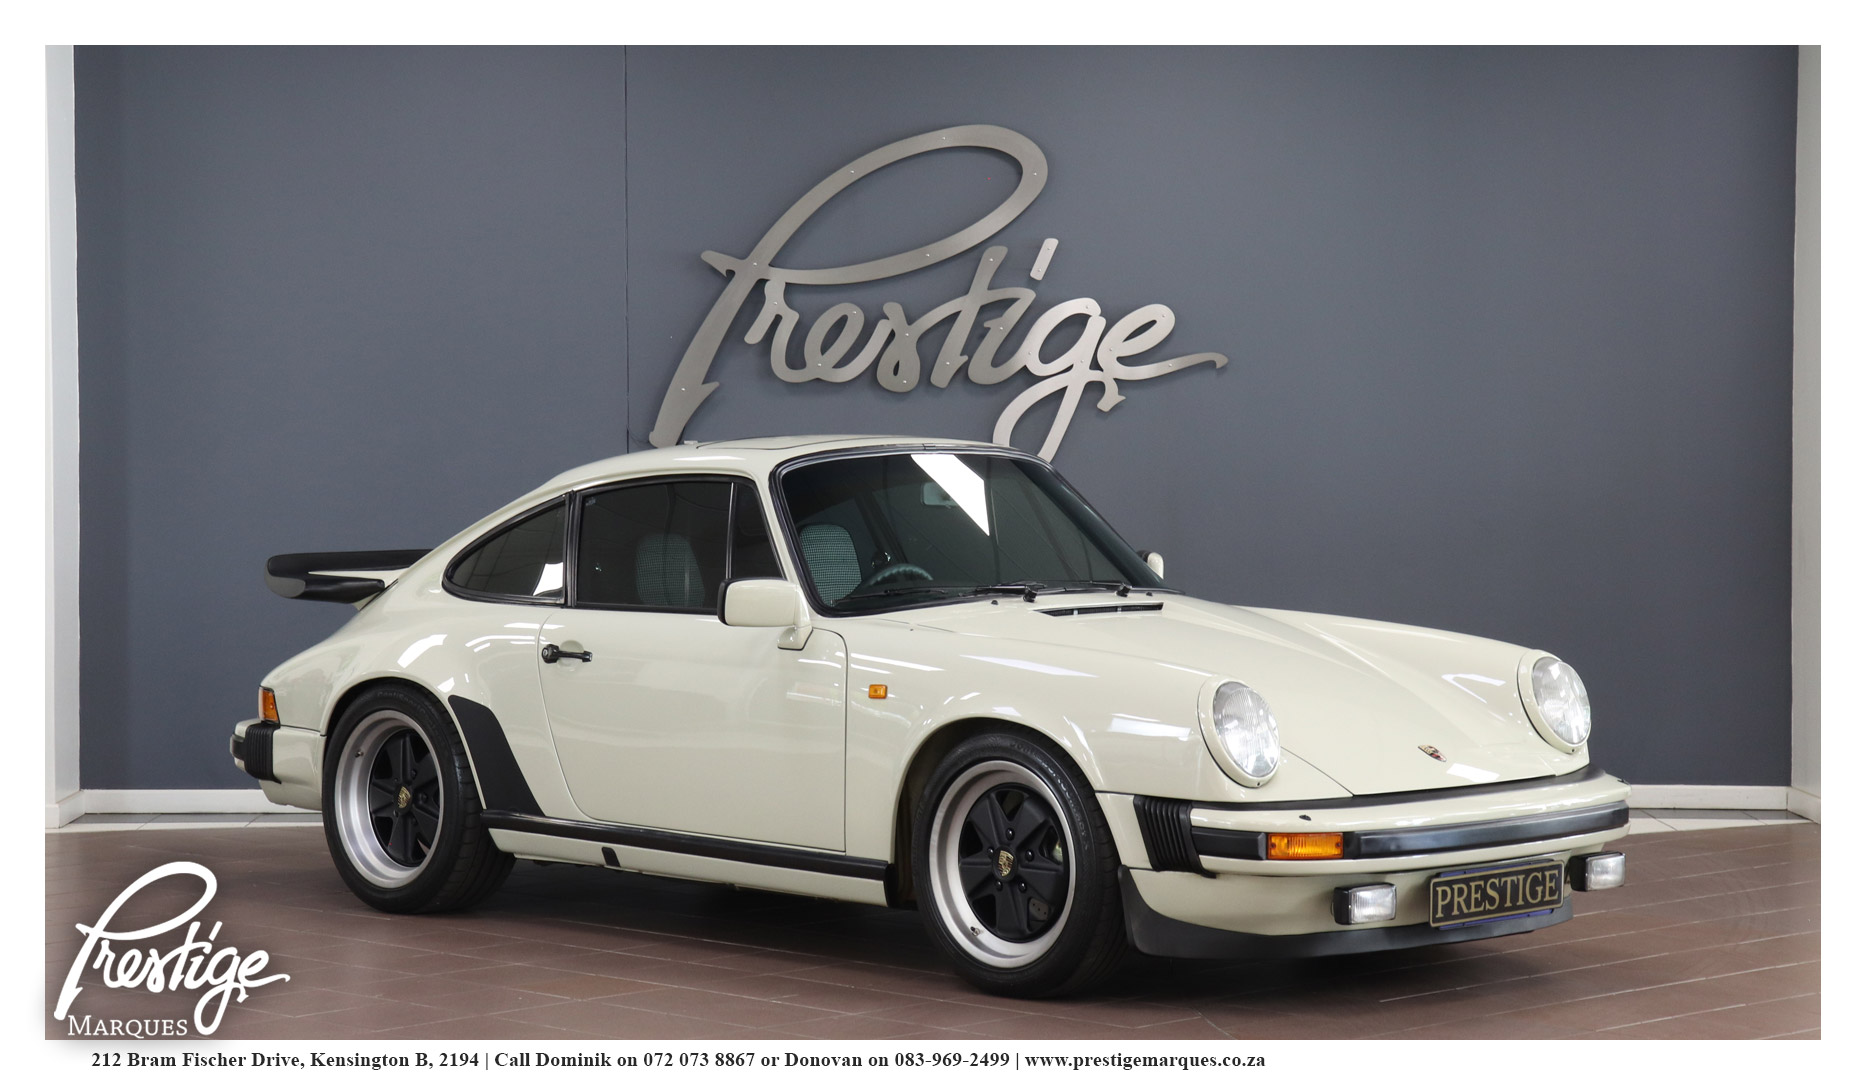 1982-Porsche-911-Carrera-20-Year-Anniversary-Tribute-Build-Prestige-Marques-Randburg-Sandton-1